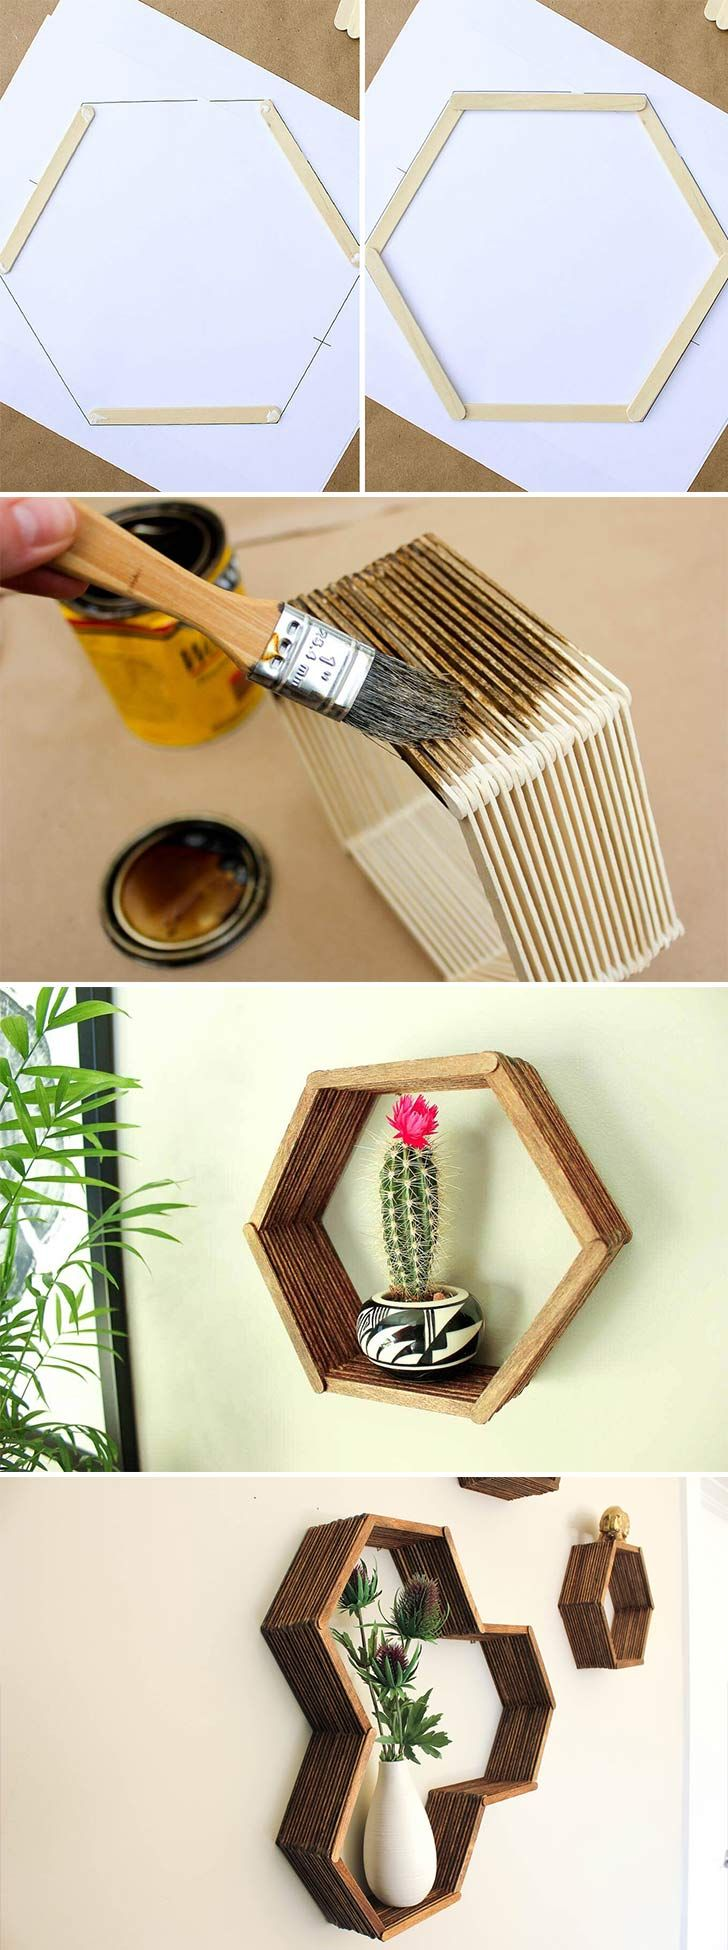 40 amazing diy home decor ideas that wont look diyed - Home Decor Craft Ideas